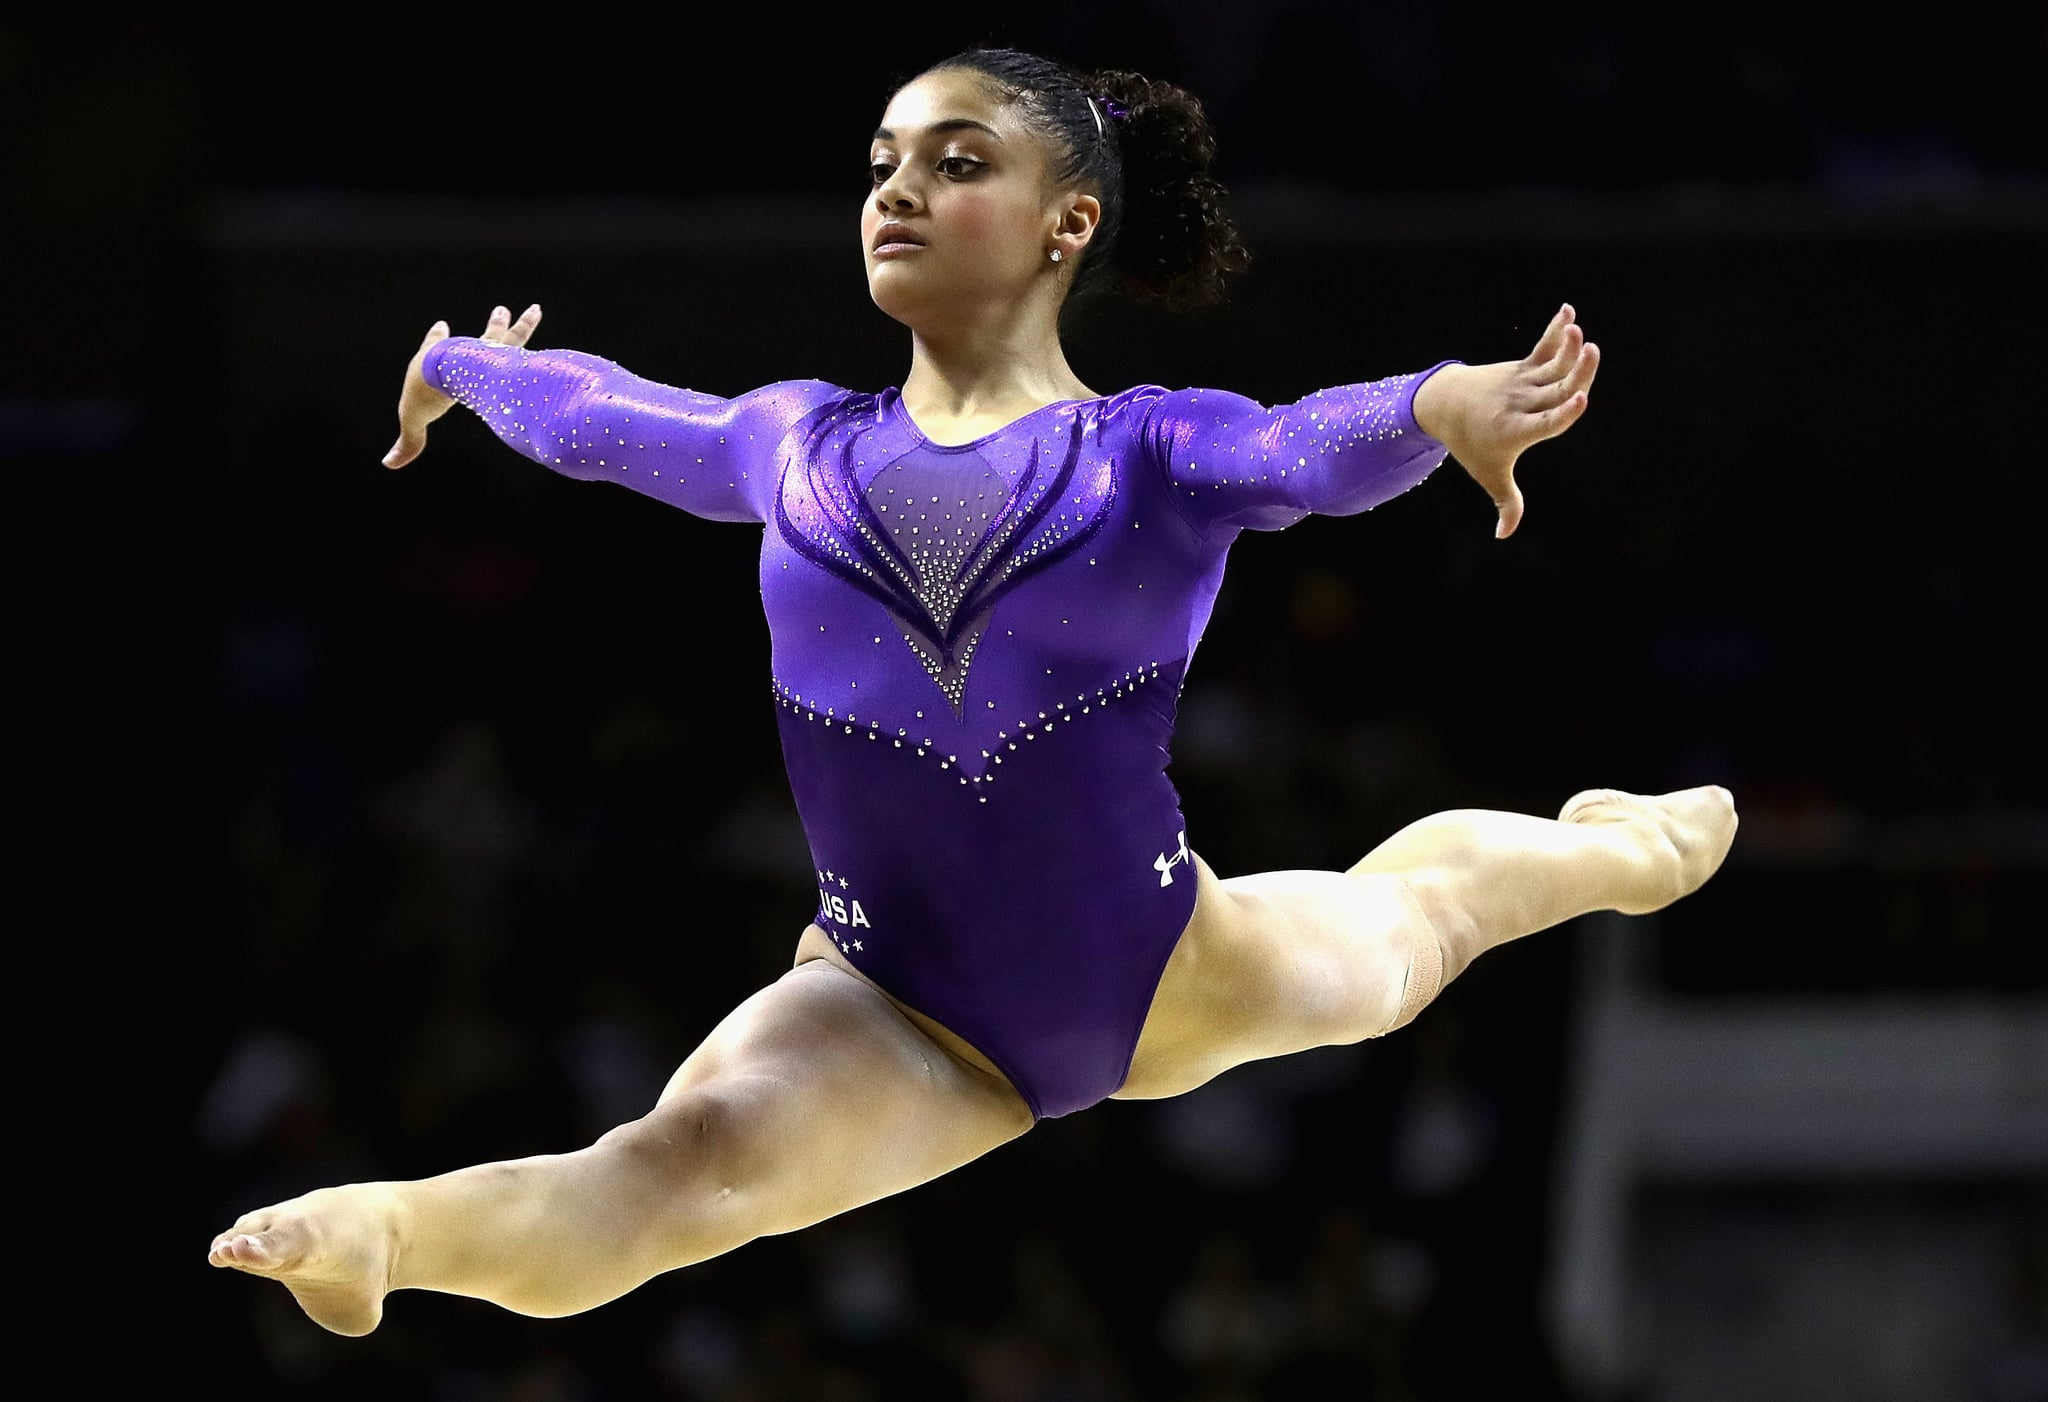 Laurie hernandez facts popsugar latina for 1 2 3 4 all the ladies on the floor